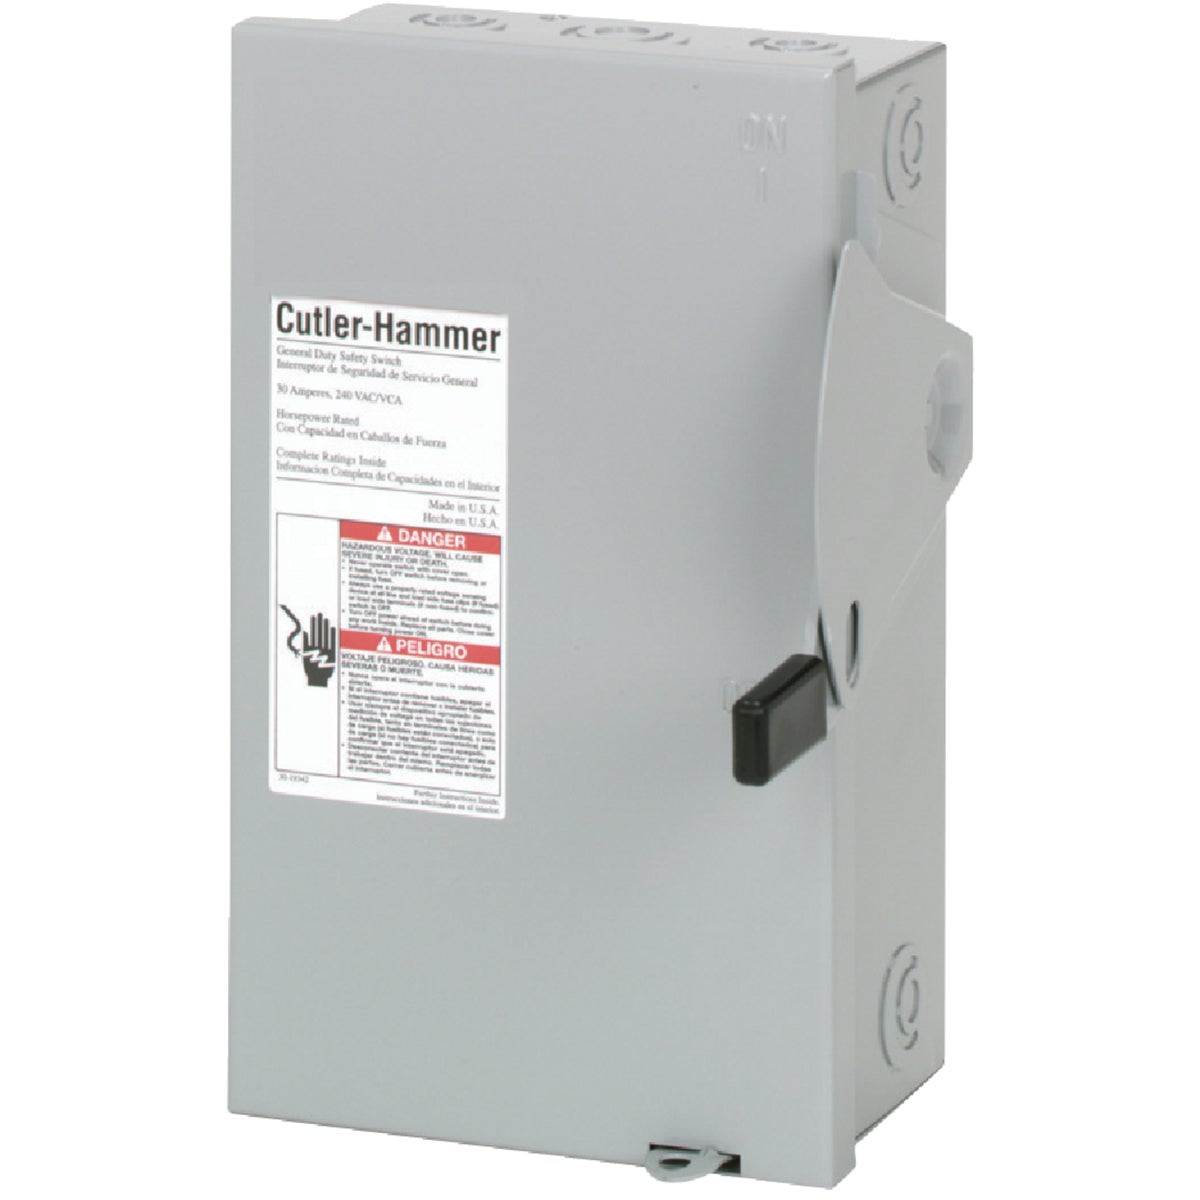 30A SAFETY SWITCH - DG221NGB by Eaton Corporation